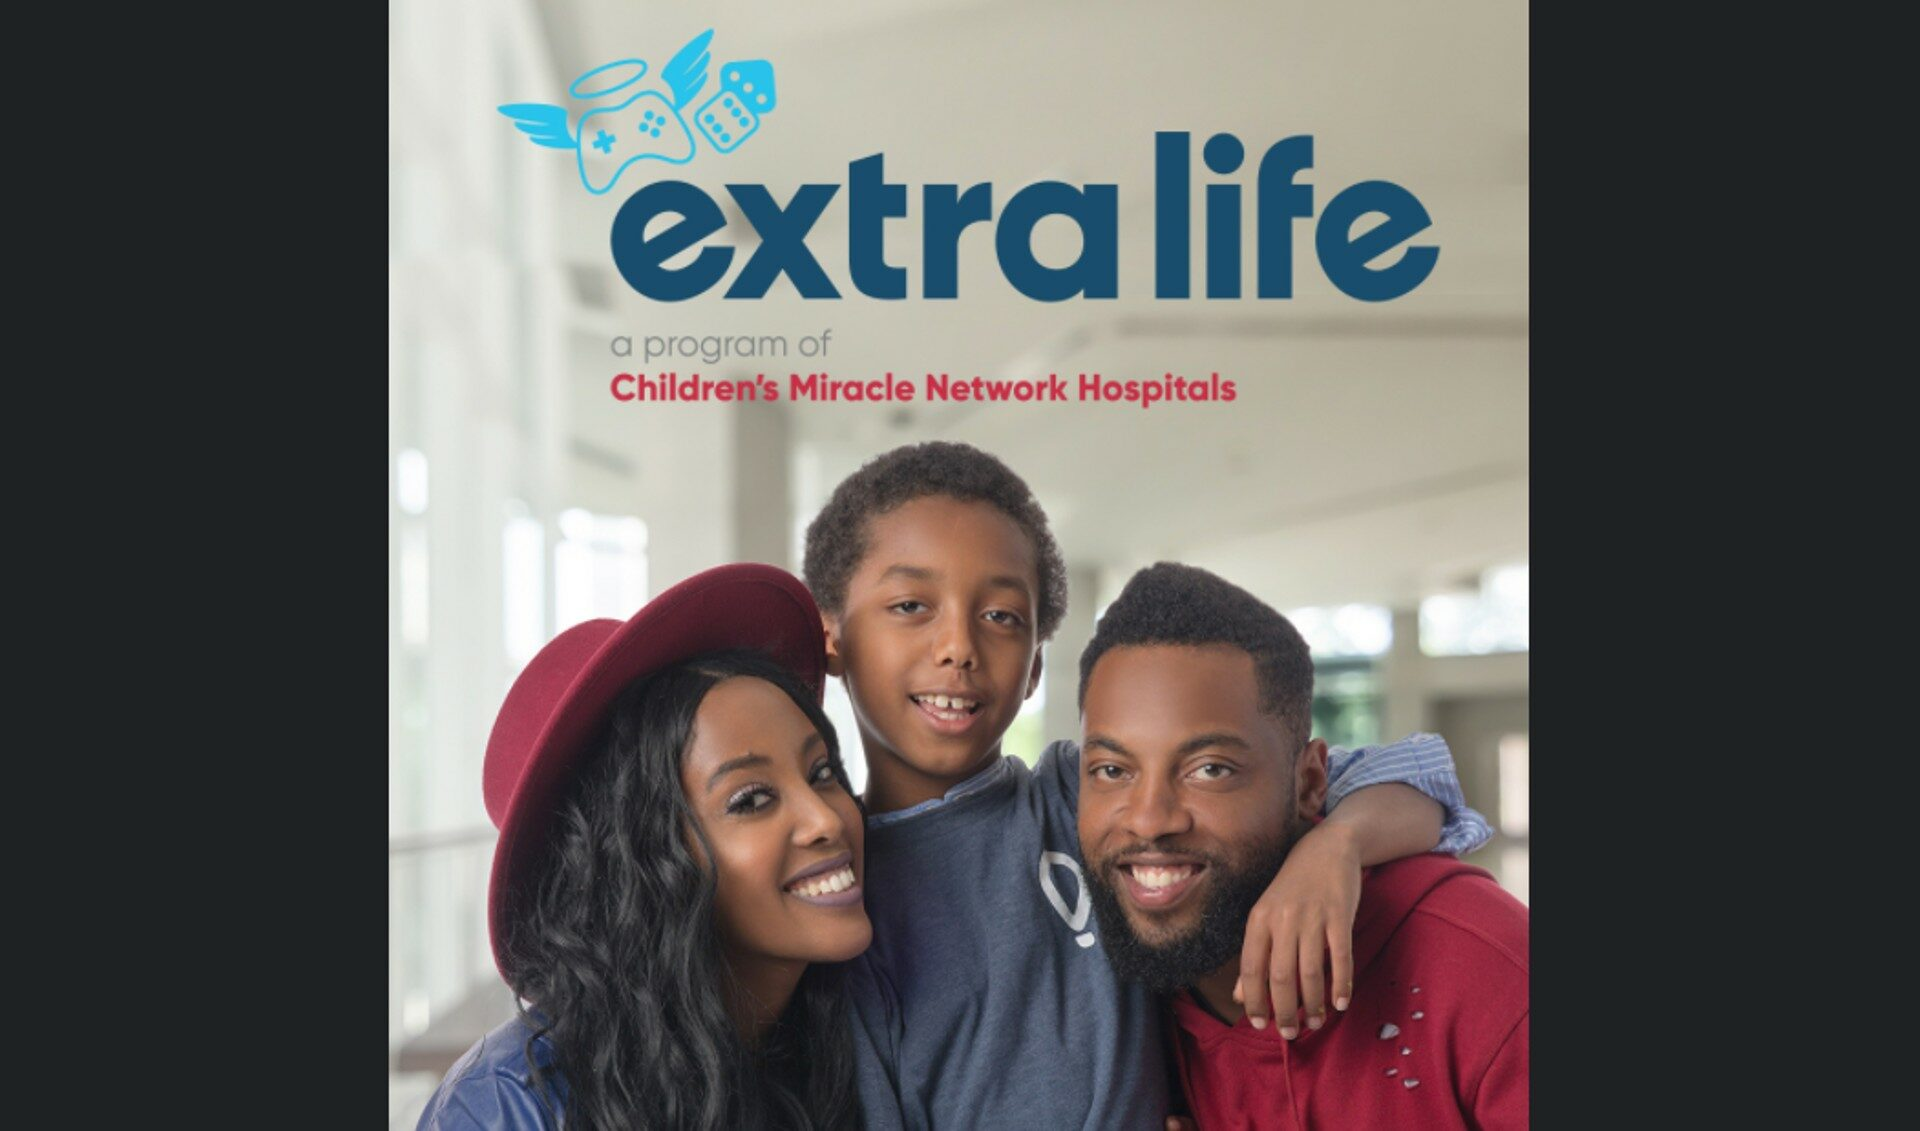 Creator Charity Platform Tiltify To Power 'Extra Life' Fundraiser For The First Time